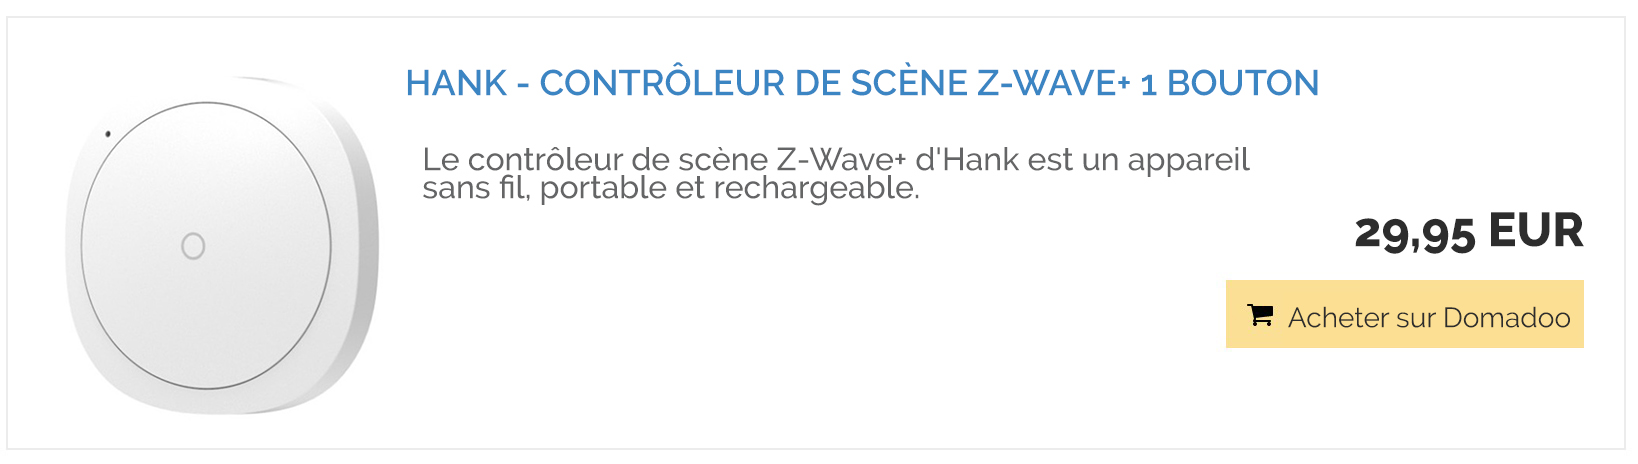 hank-zwave-bouton-domadoo